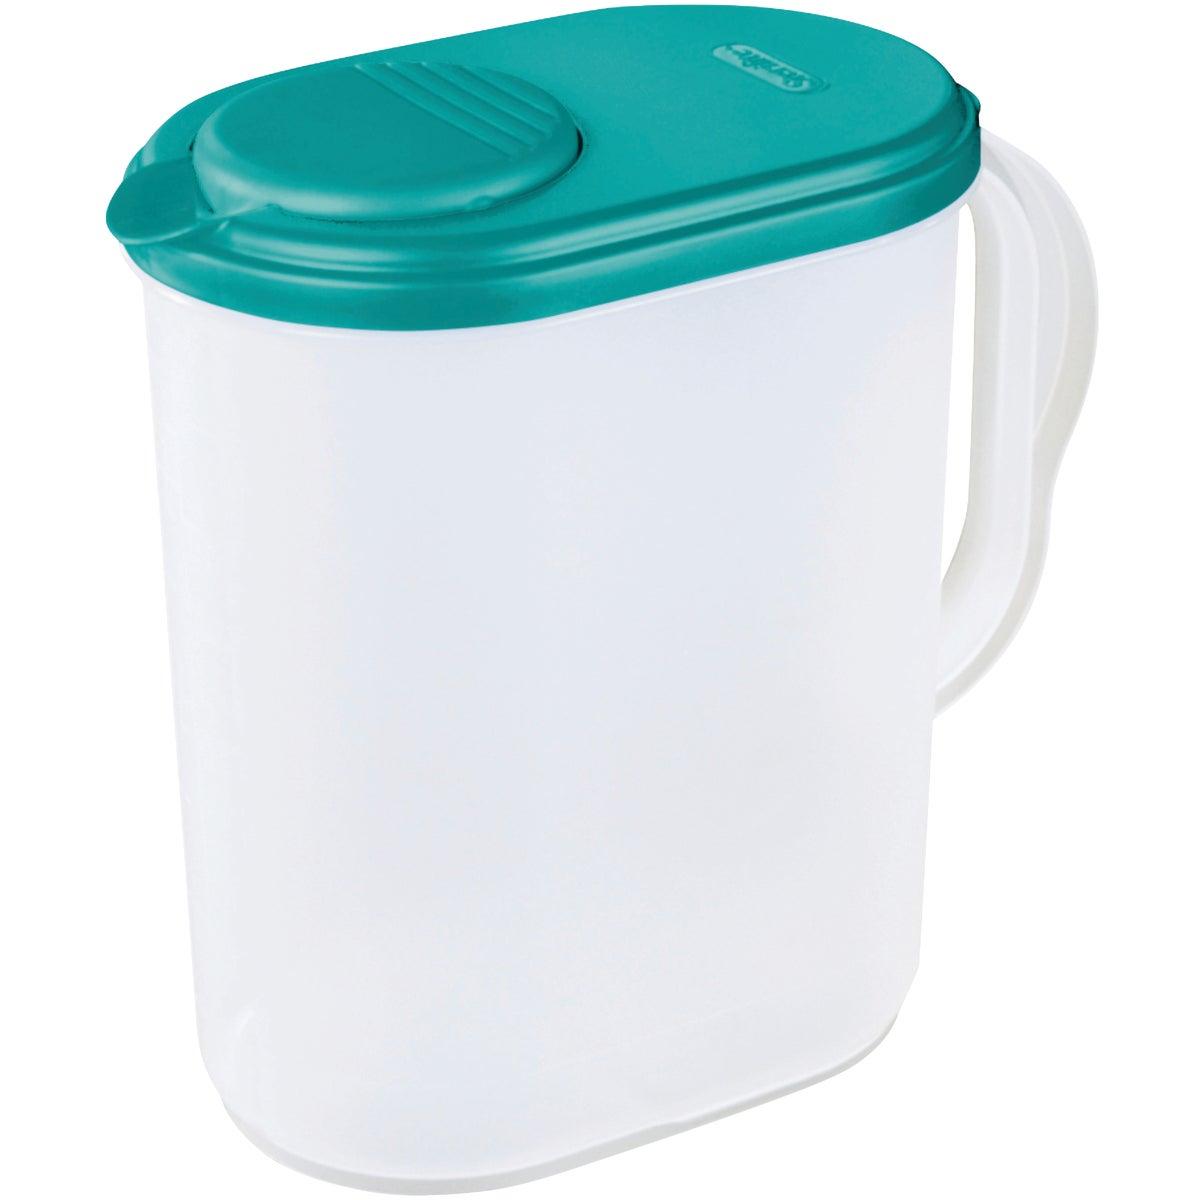 1 GALLON PITCHER